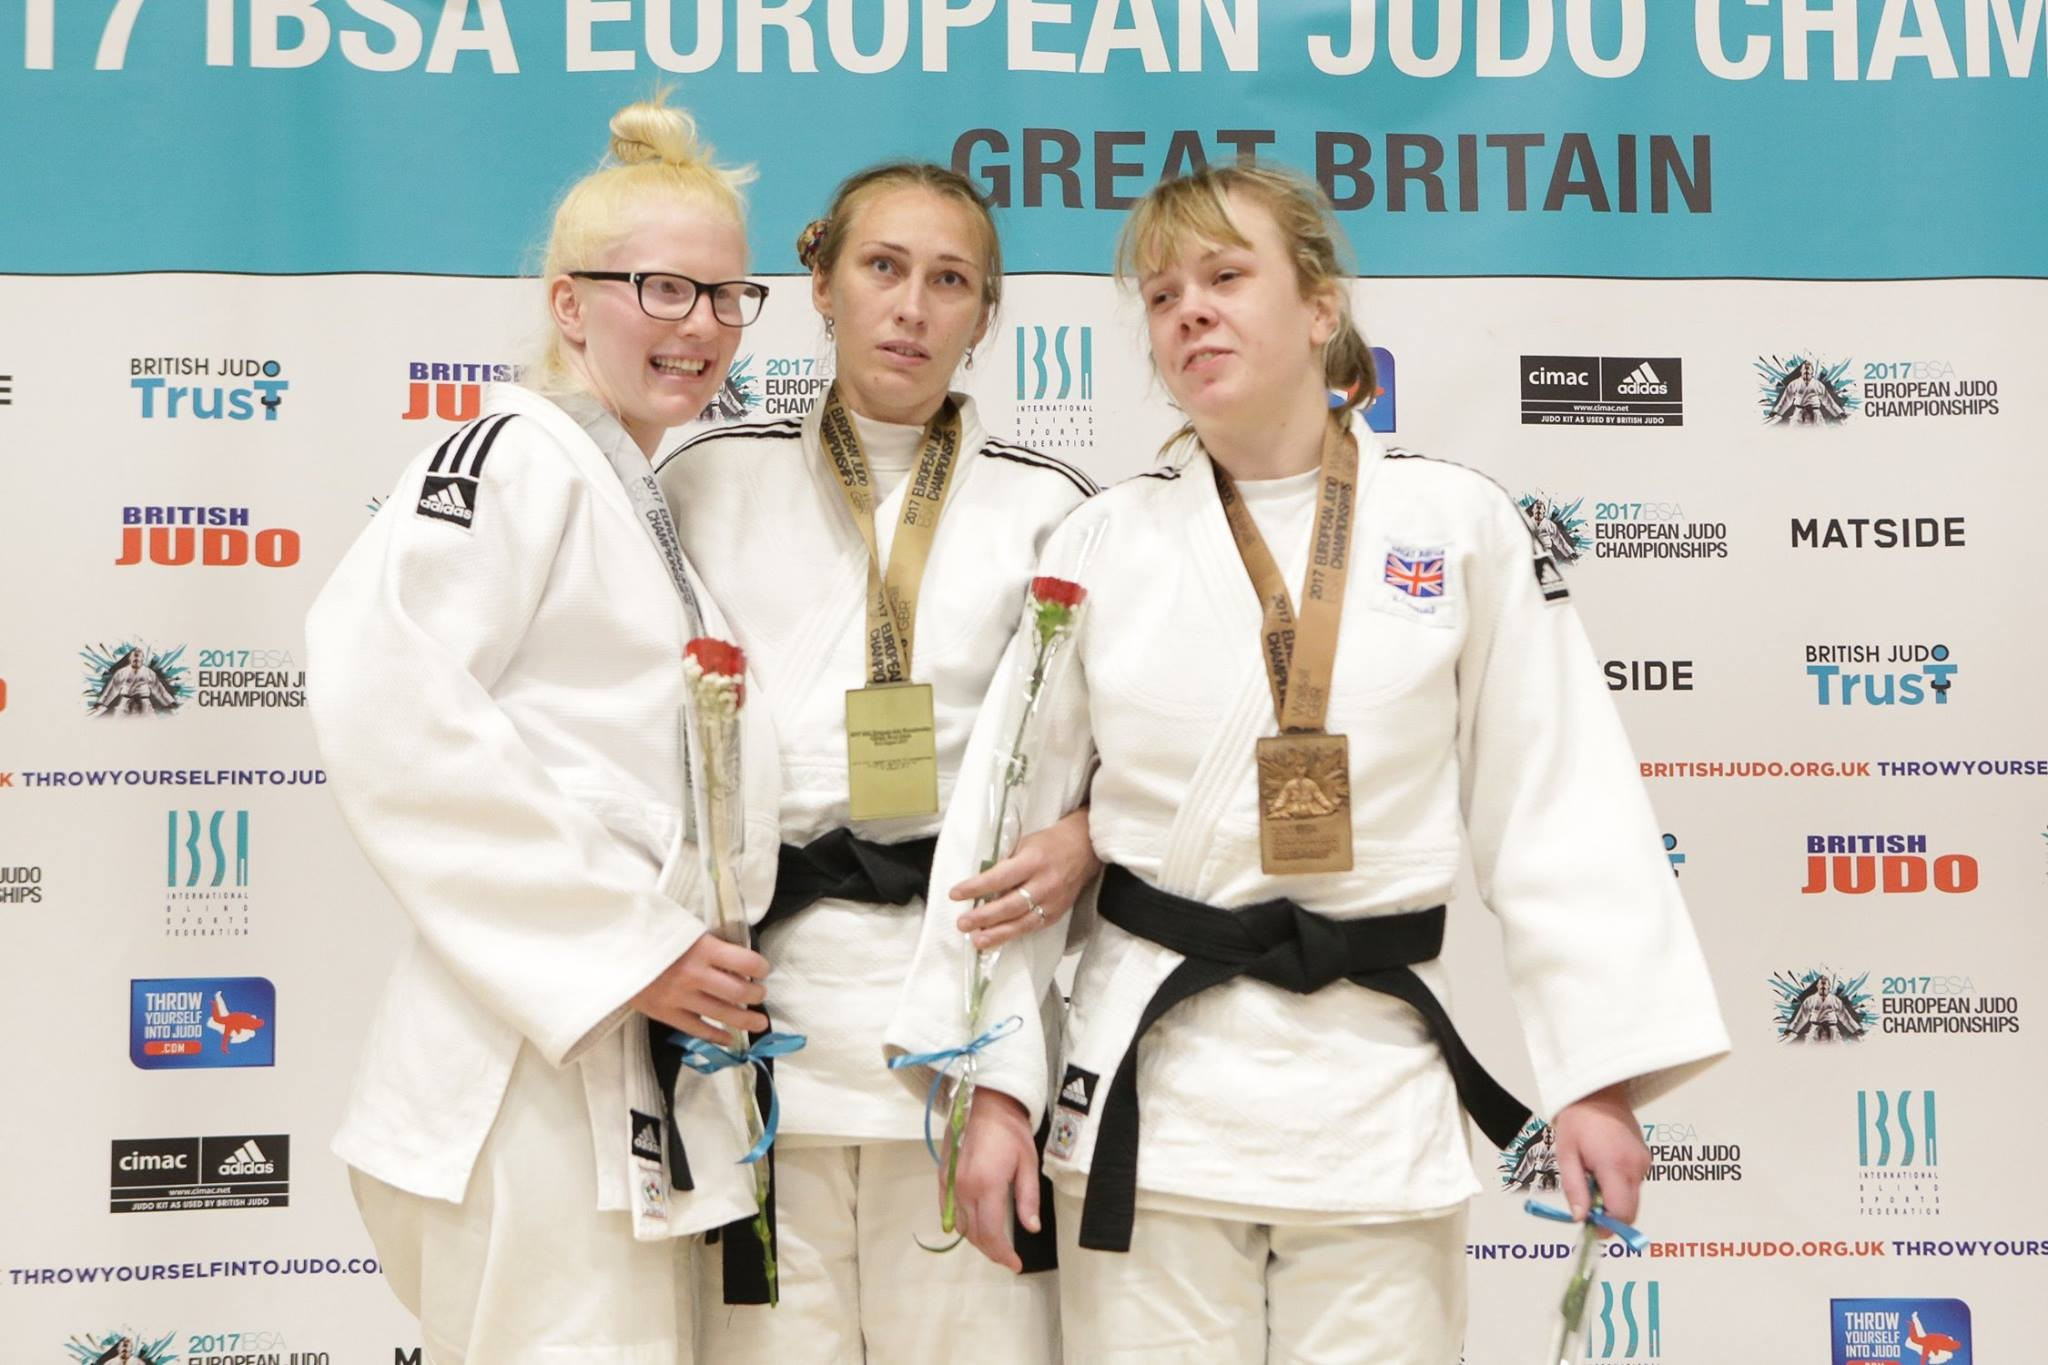 Russia win three gold medals on opening day of IBSA European Judo Championships